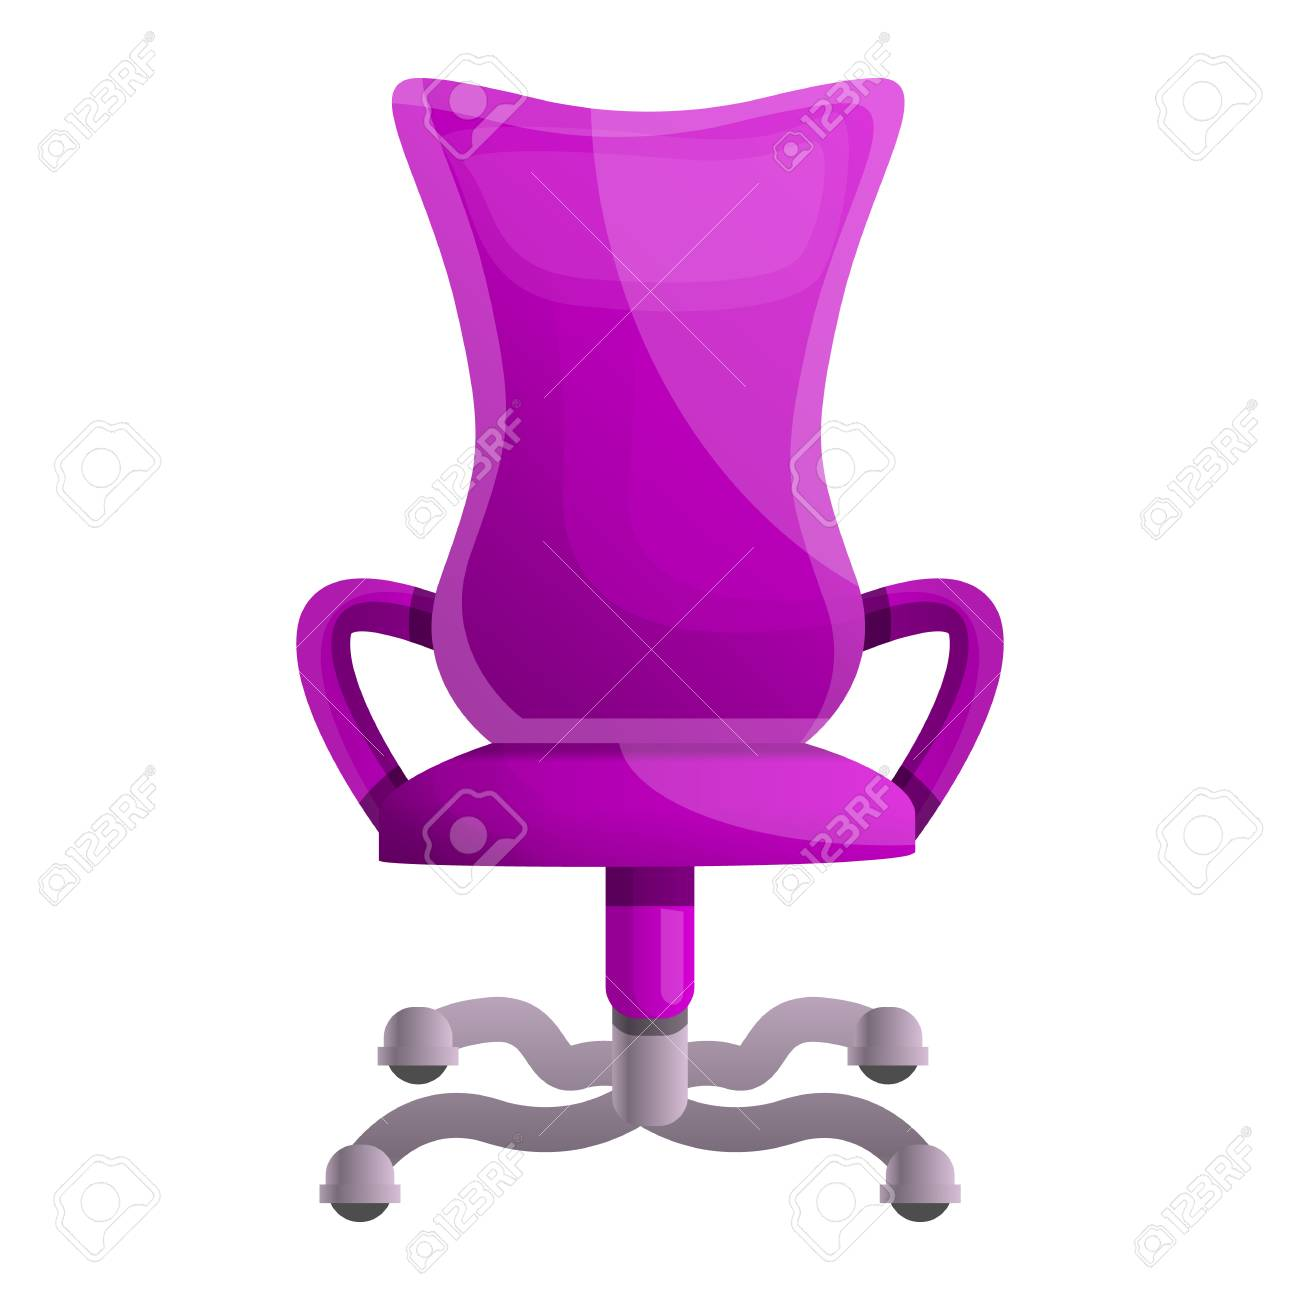 Outstanding Pink Desk Chair Icon Cartoon Of Pink Desk Chair Icon For Web Alphanode Cool Chair Designs And Ideas Alphanodeonline